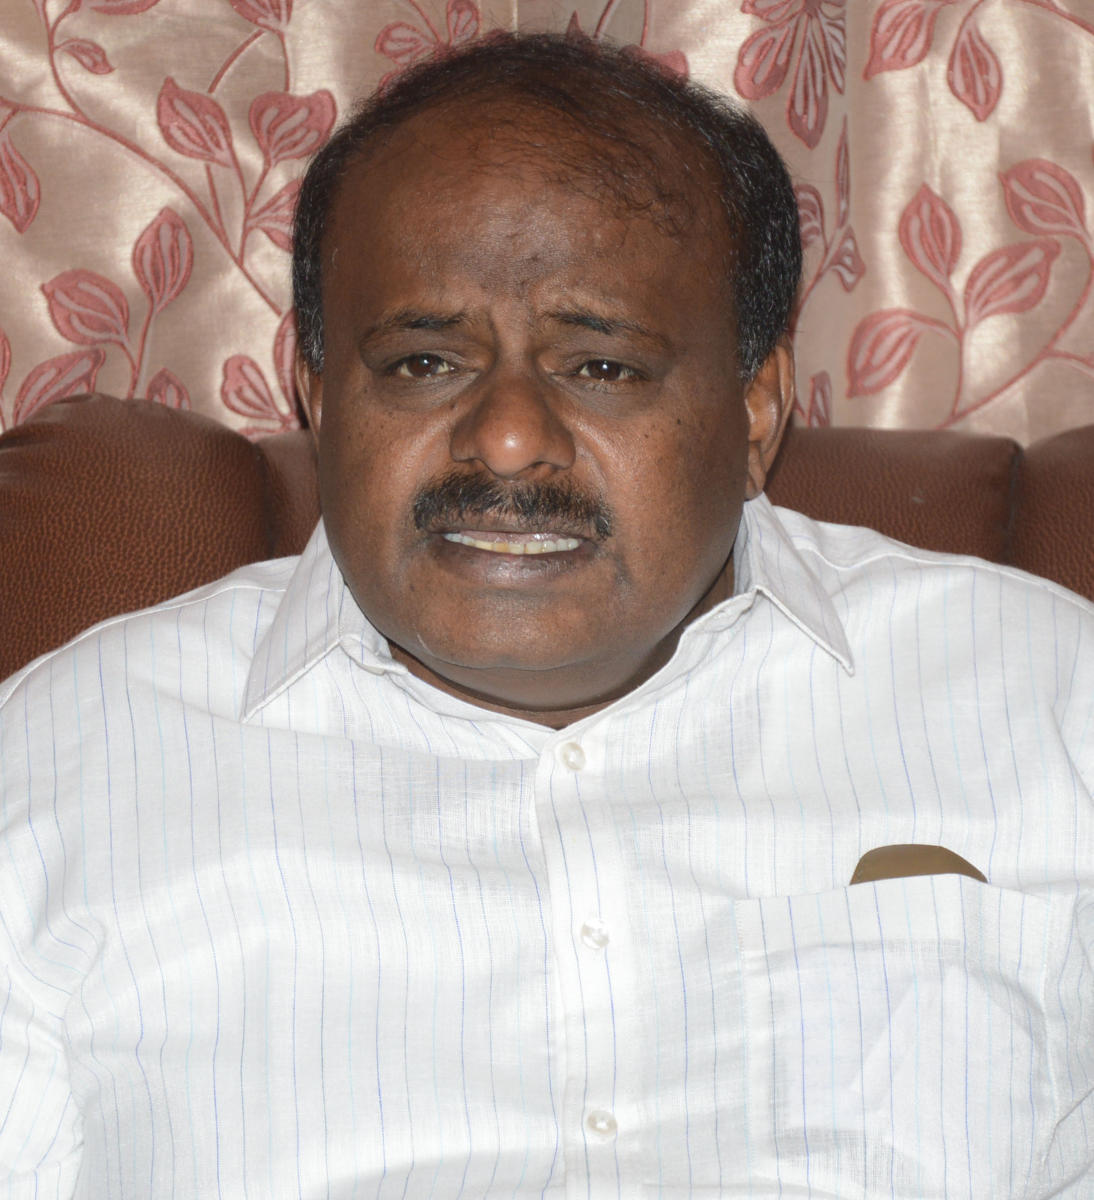 During his day-long visit, the CM Kumaraswamy will meet Prime Minister Narendra Modi and also visit Rajghat. (File photo)